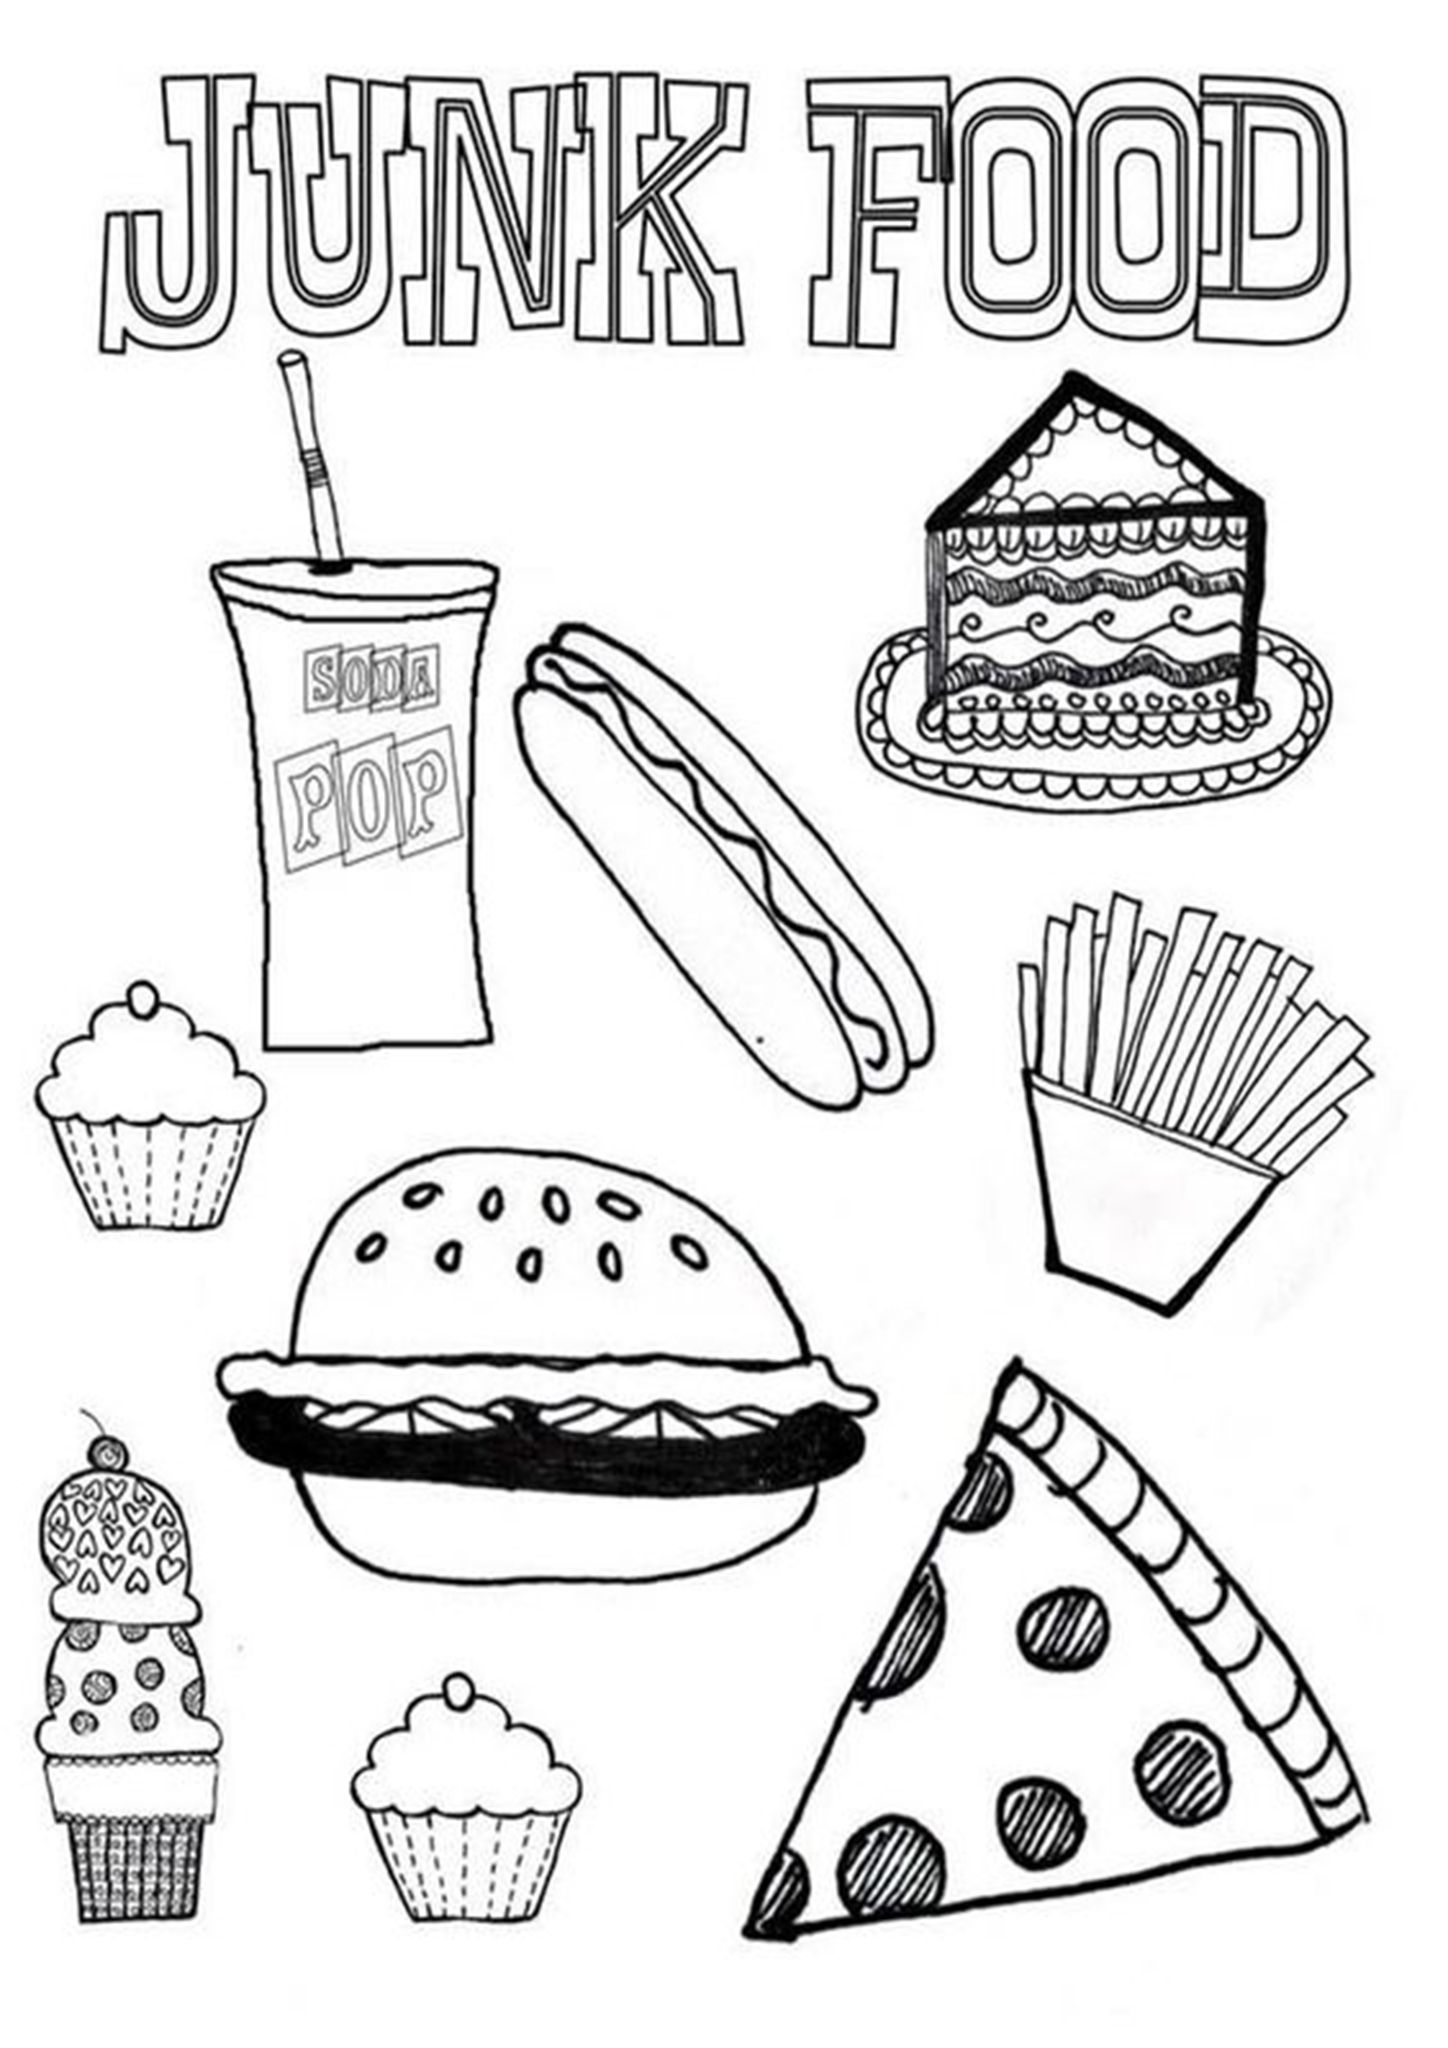 Free Easy To Print Food Coloring Pages Food Coloring Pages Food Coloring Healthy And Unhealthy Food